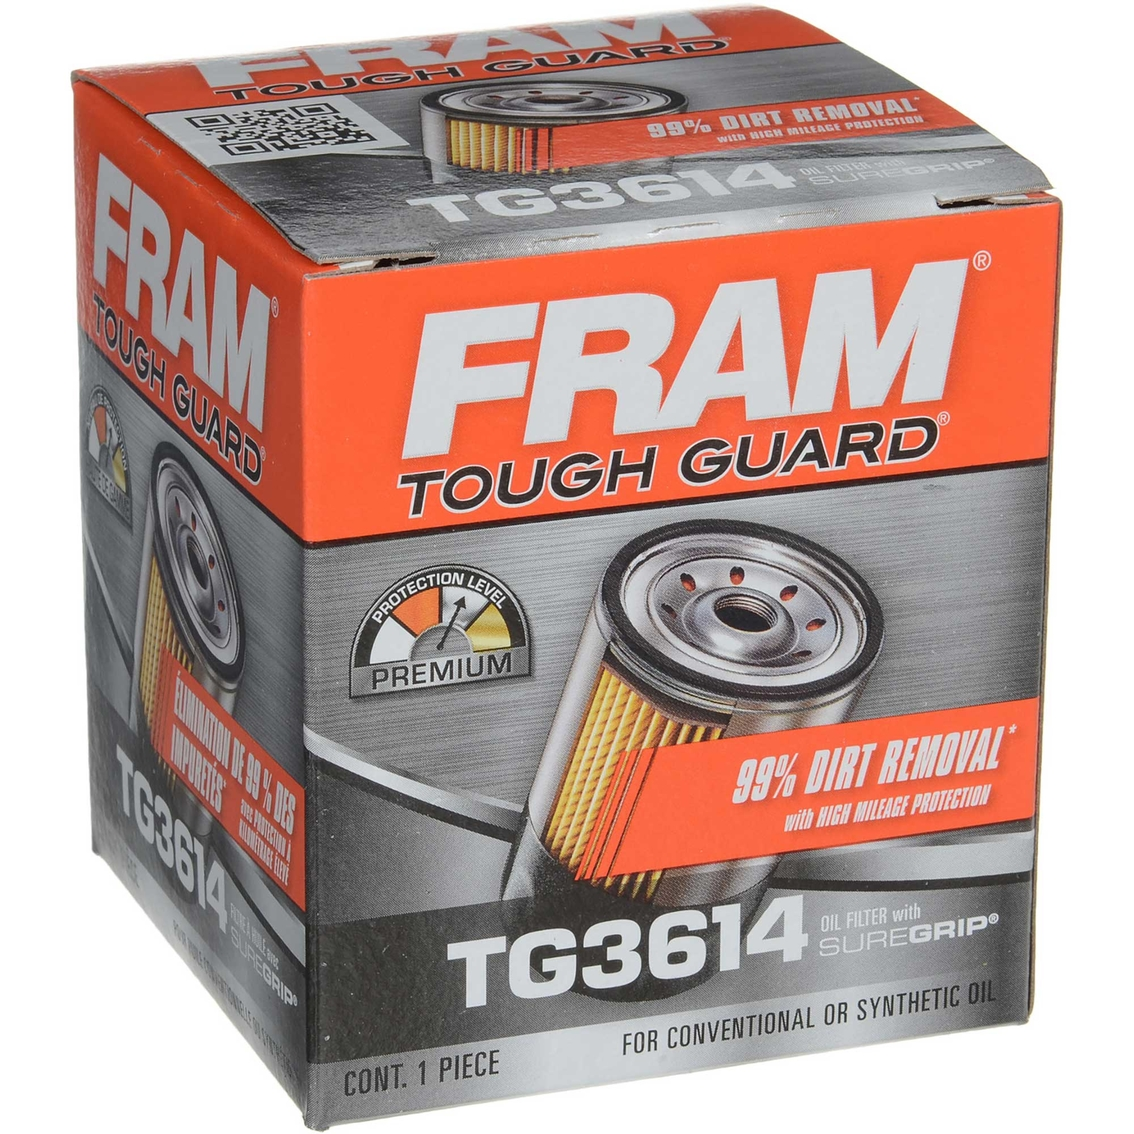 Fram Tough Guard Spin On Oil Filter, Tg3614   Replacement